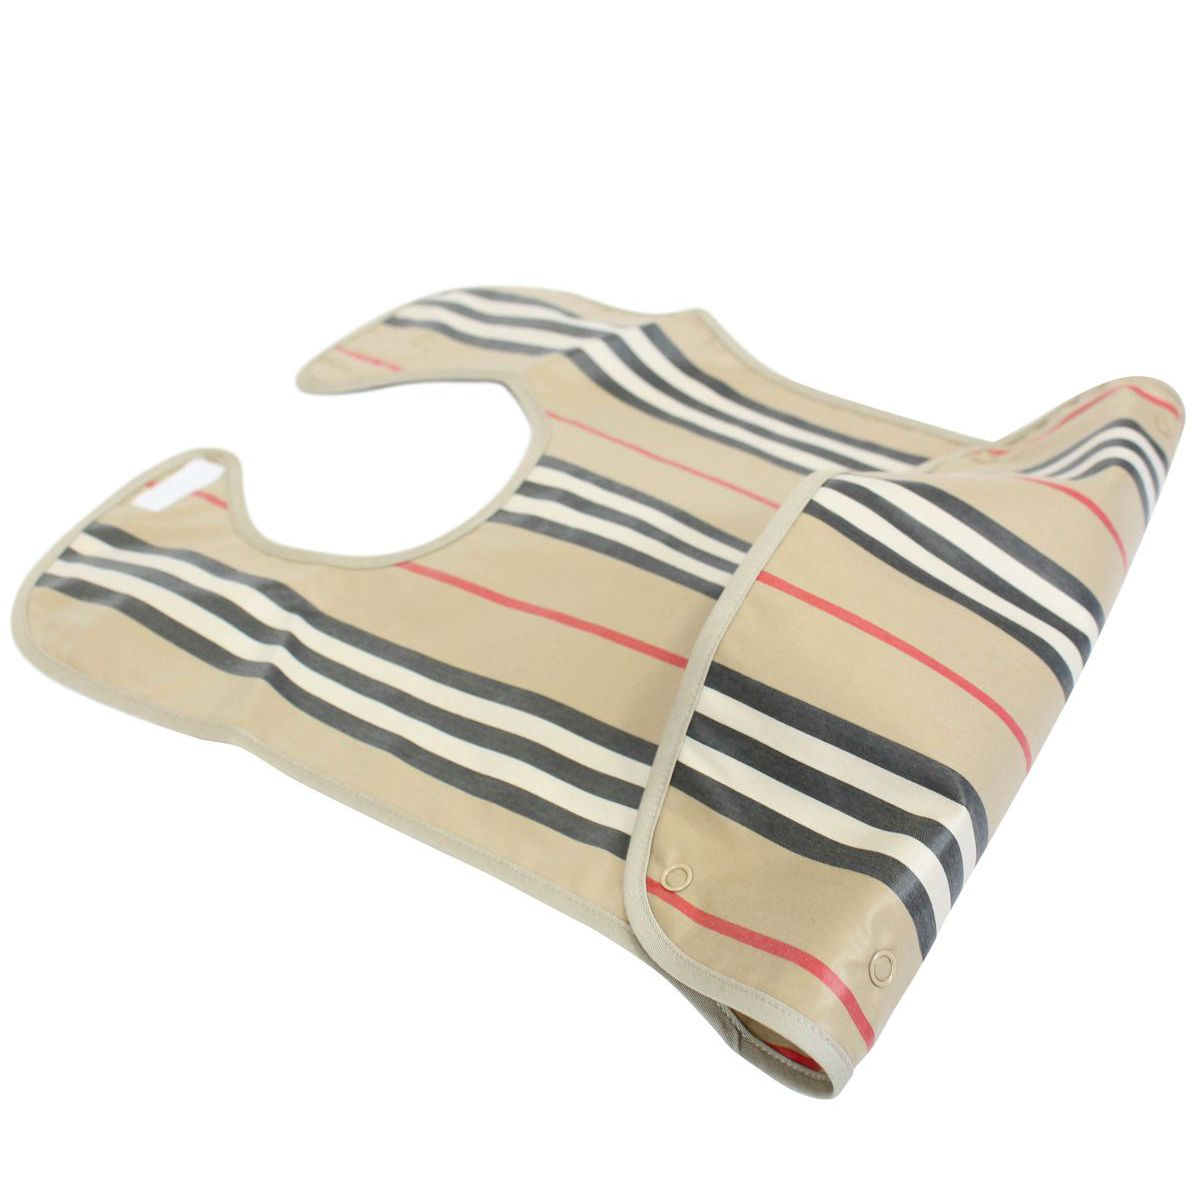 Bib Icon Bib with check pattern Beige check Burberry